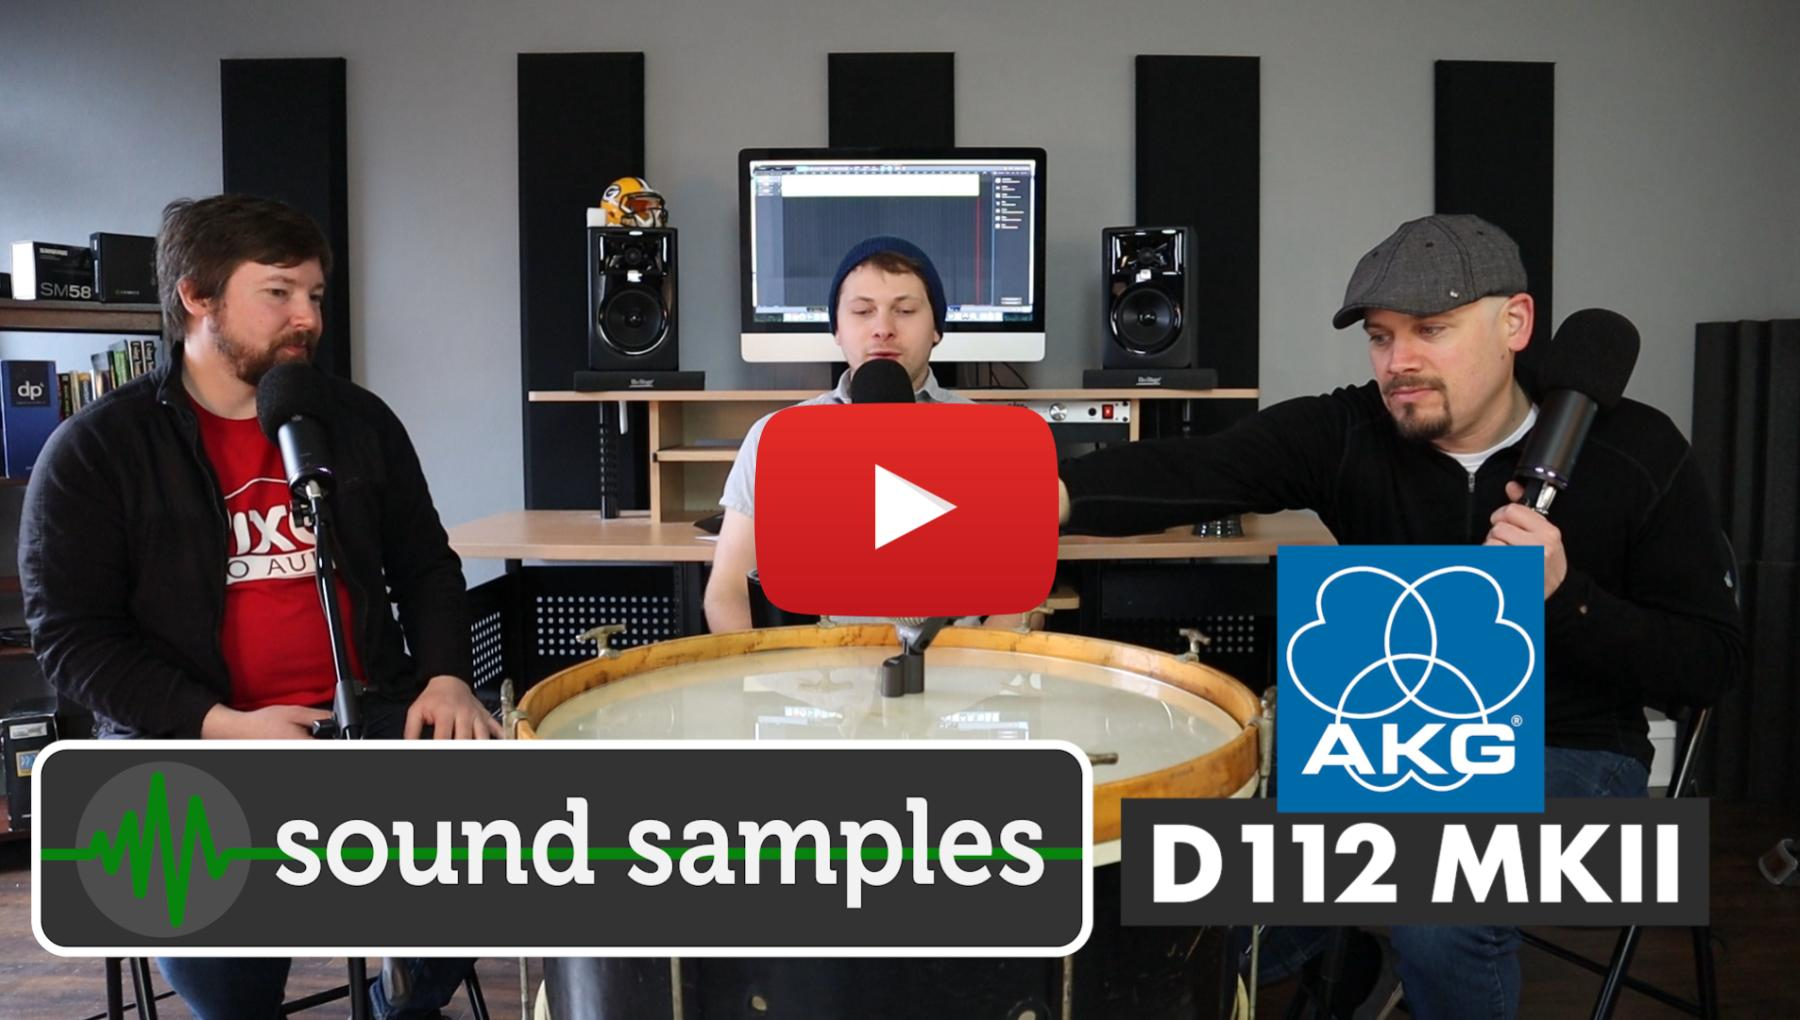 Weekly Show - PPA Unfiltered - AKG D112 MKII Sound Samples!